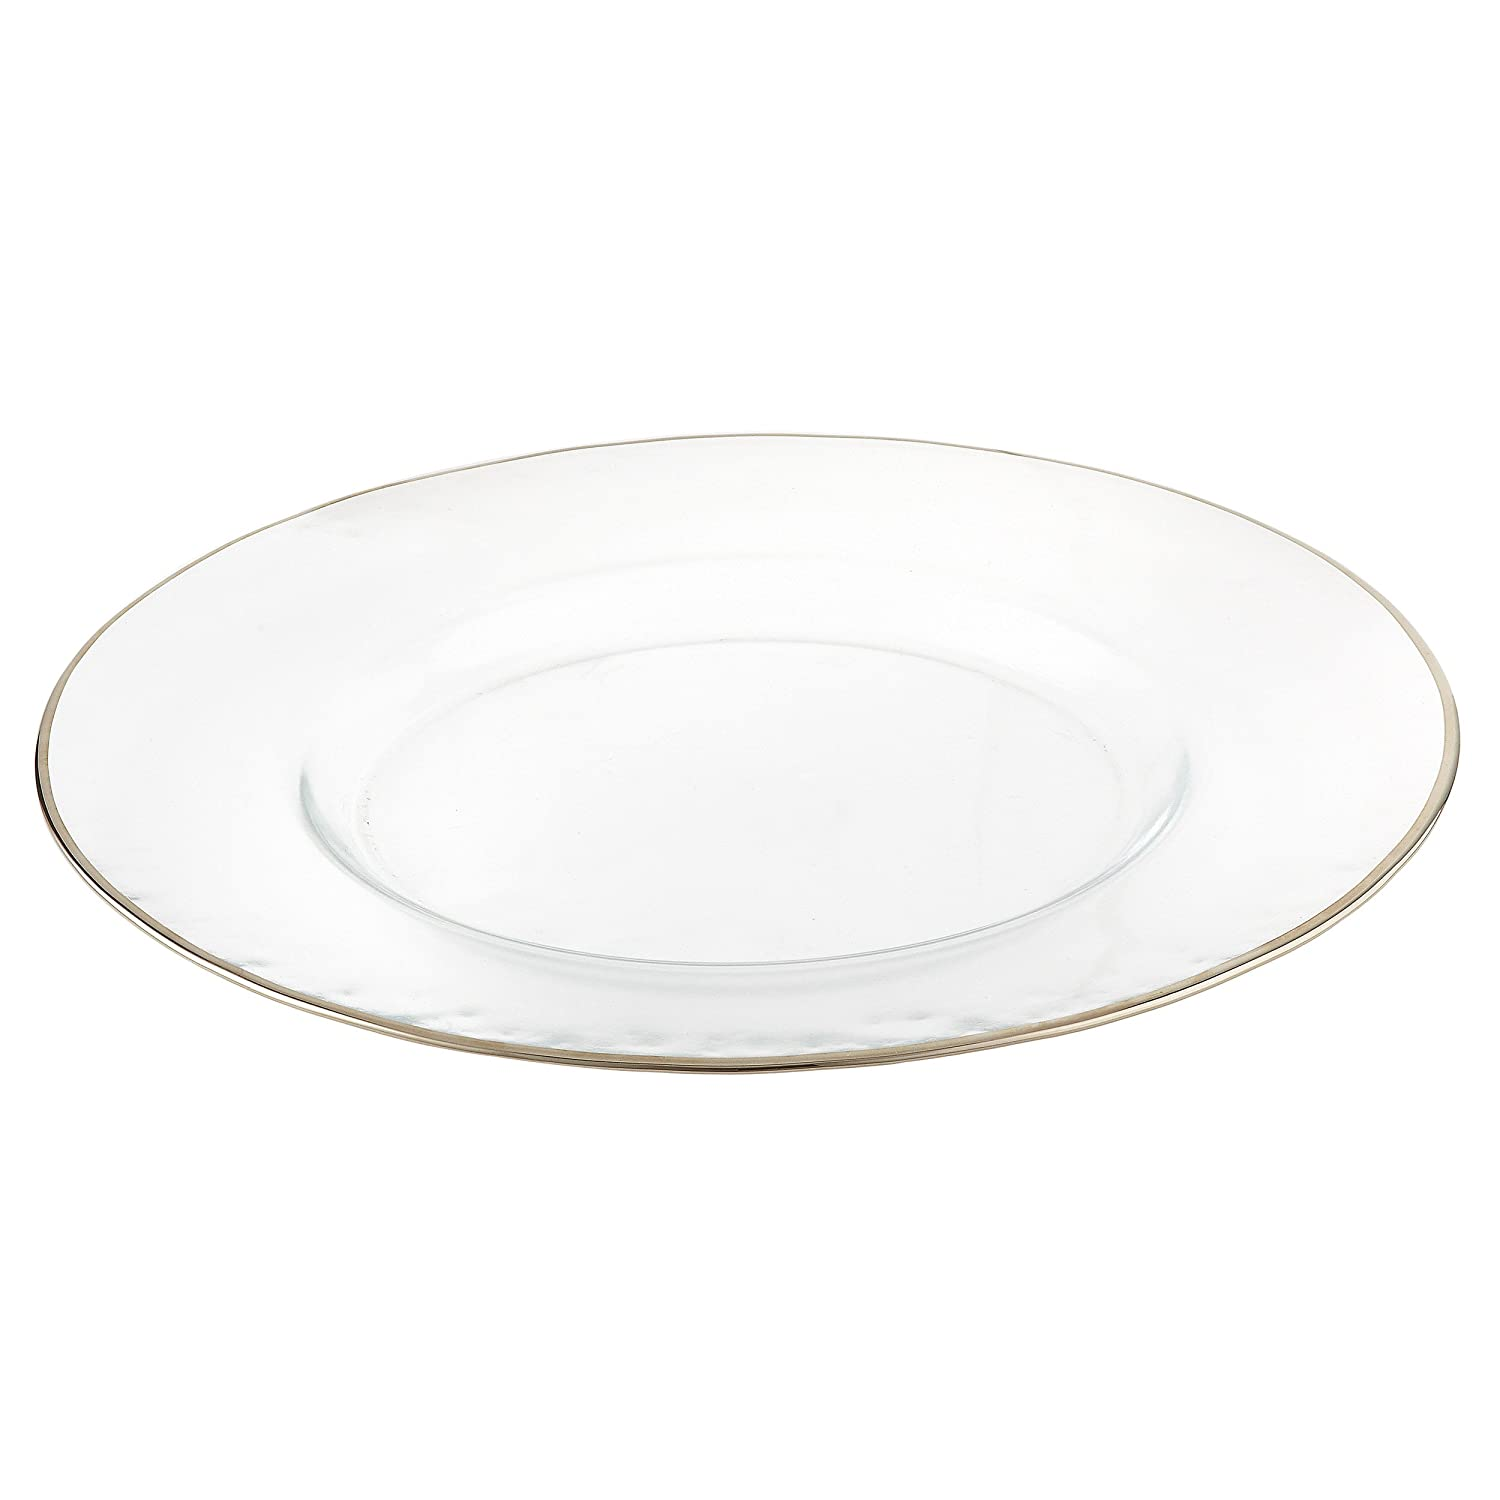 Elegance-31122-Set of 4 Silver Rim Chargers 13-Inch Leeber Limited